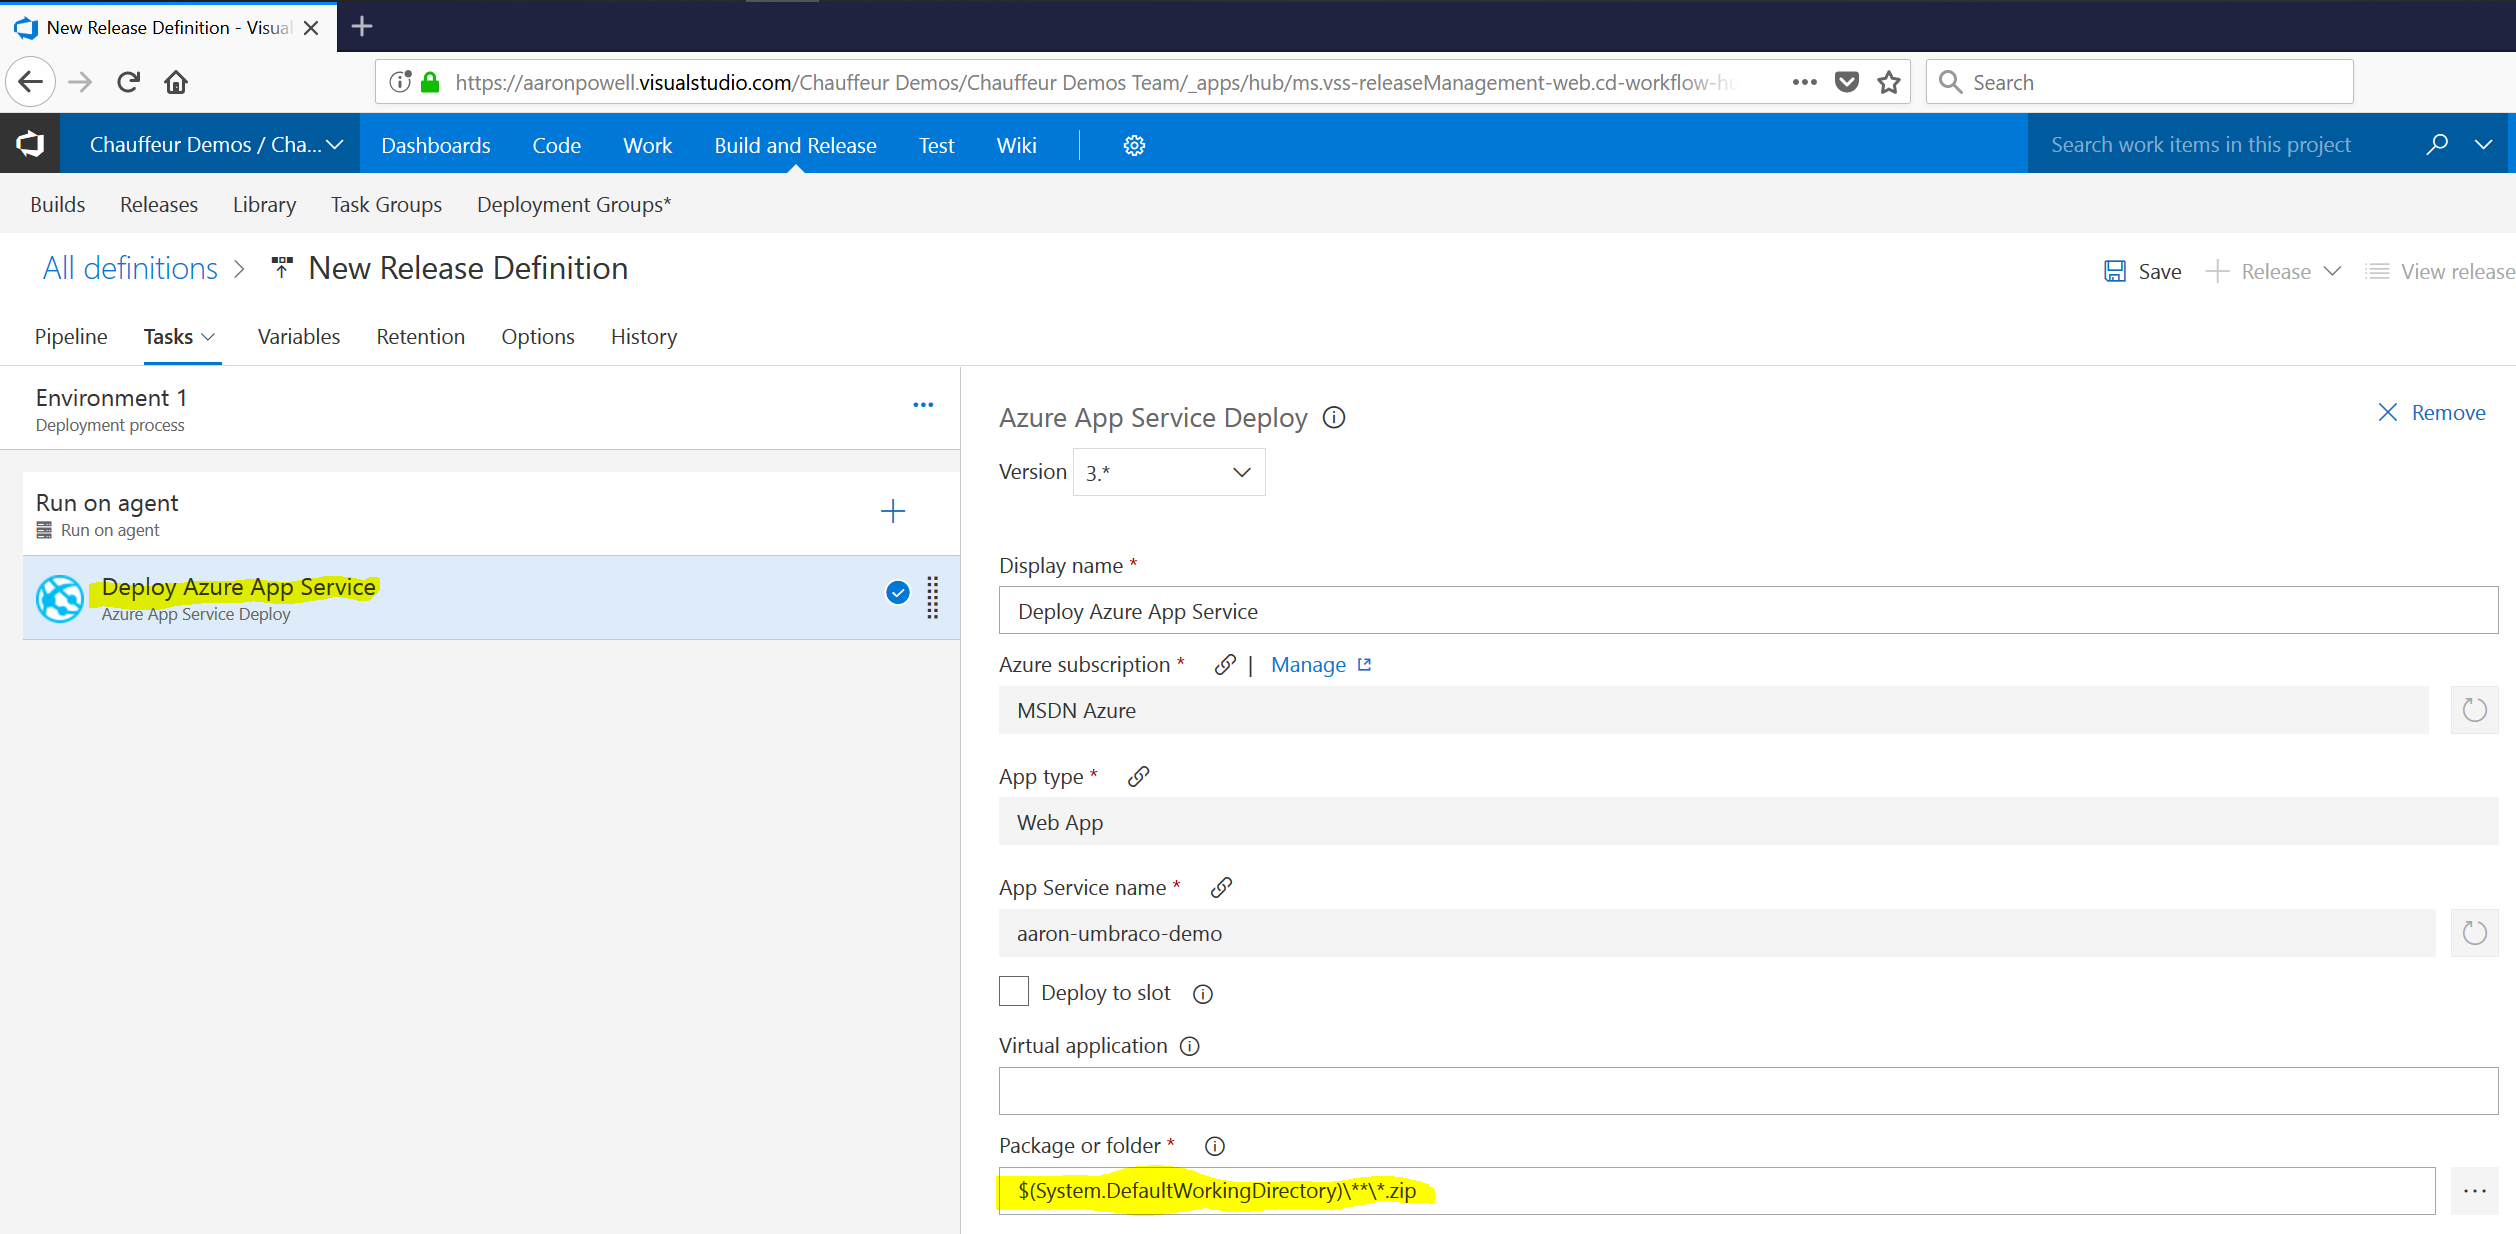 Deploying using VSTS to Azure | Chauffeur